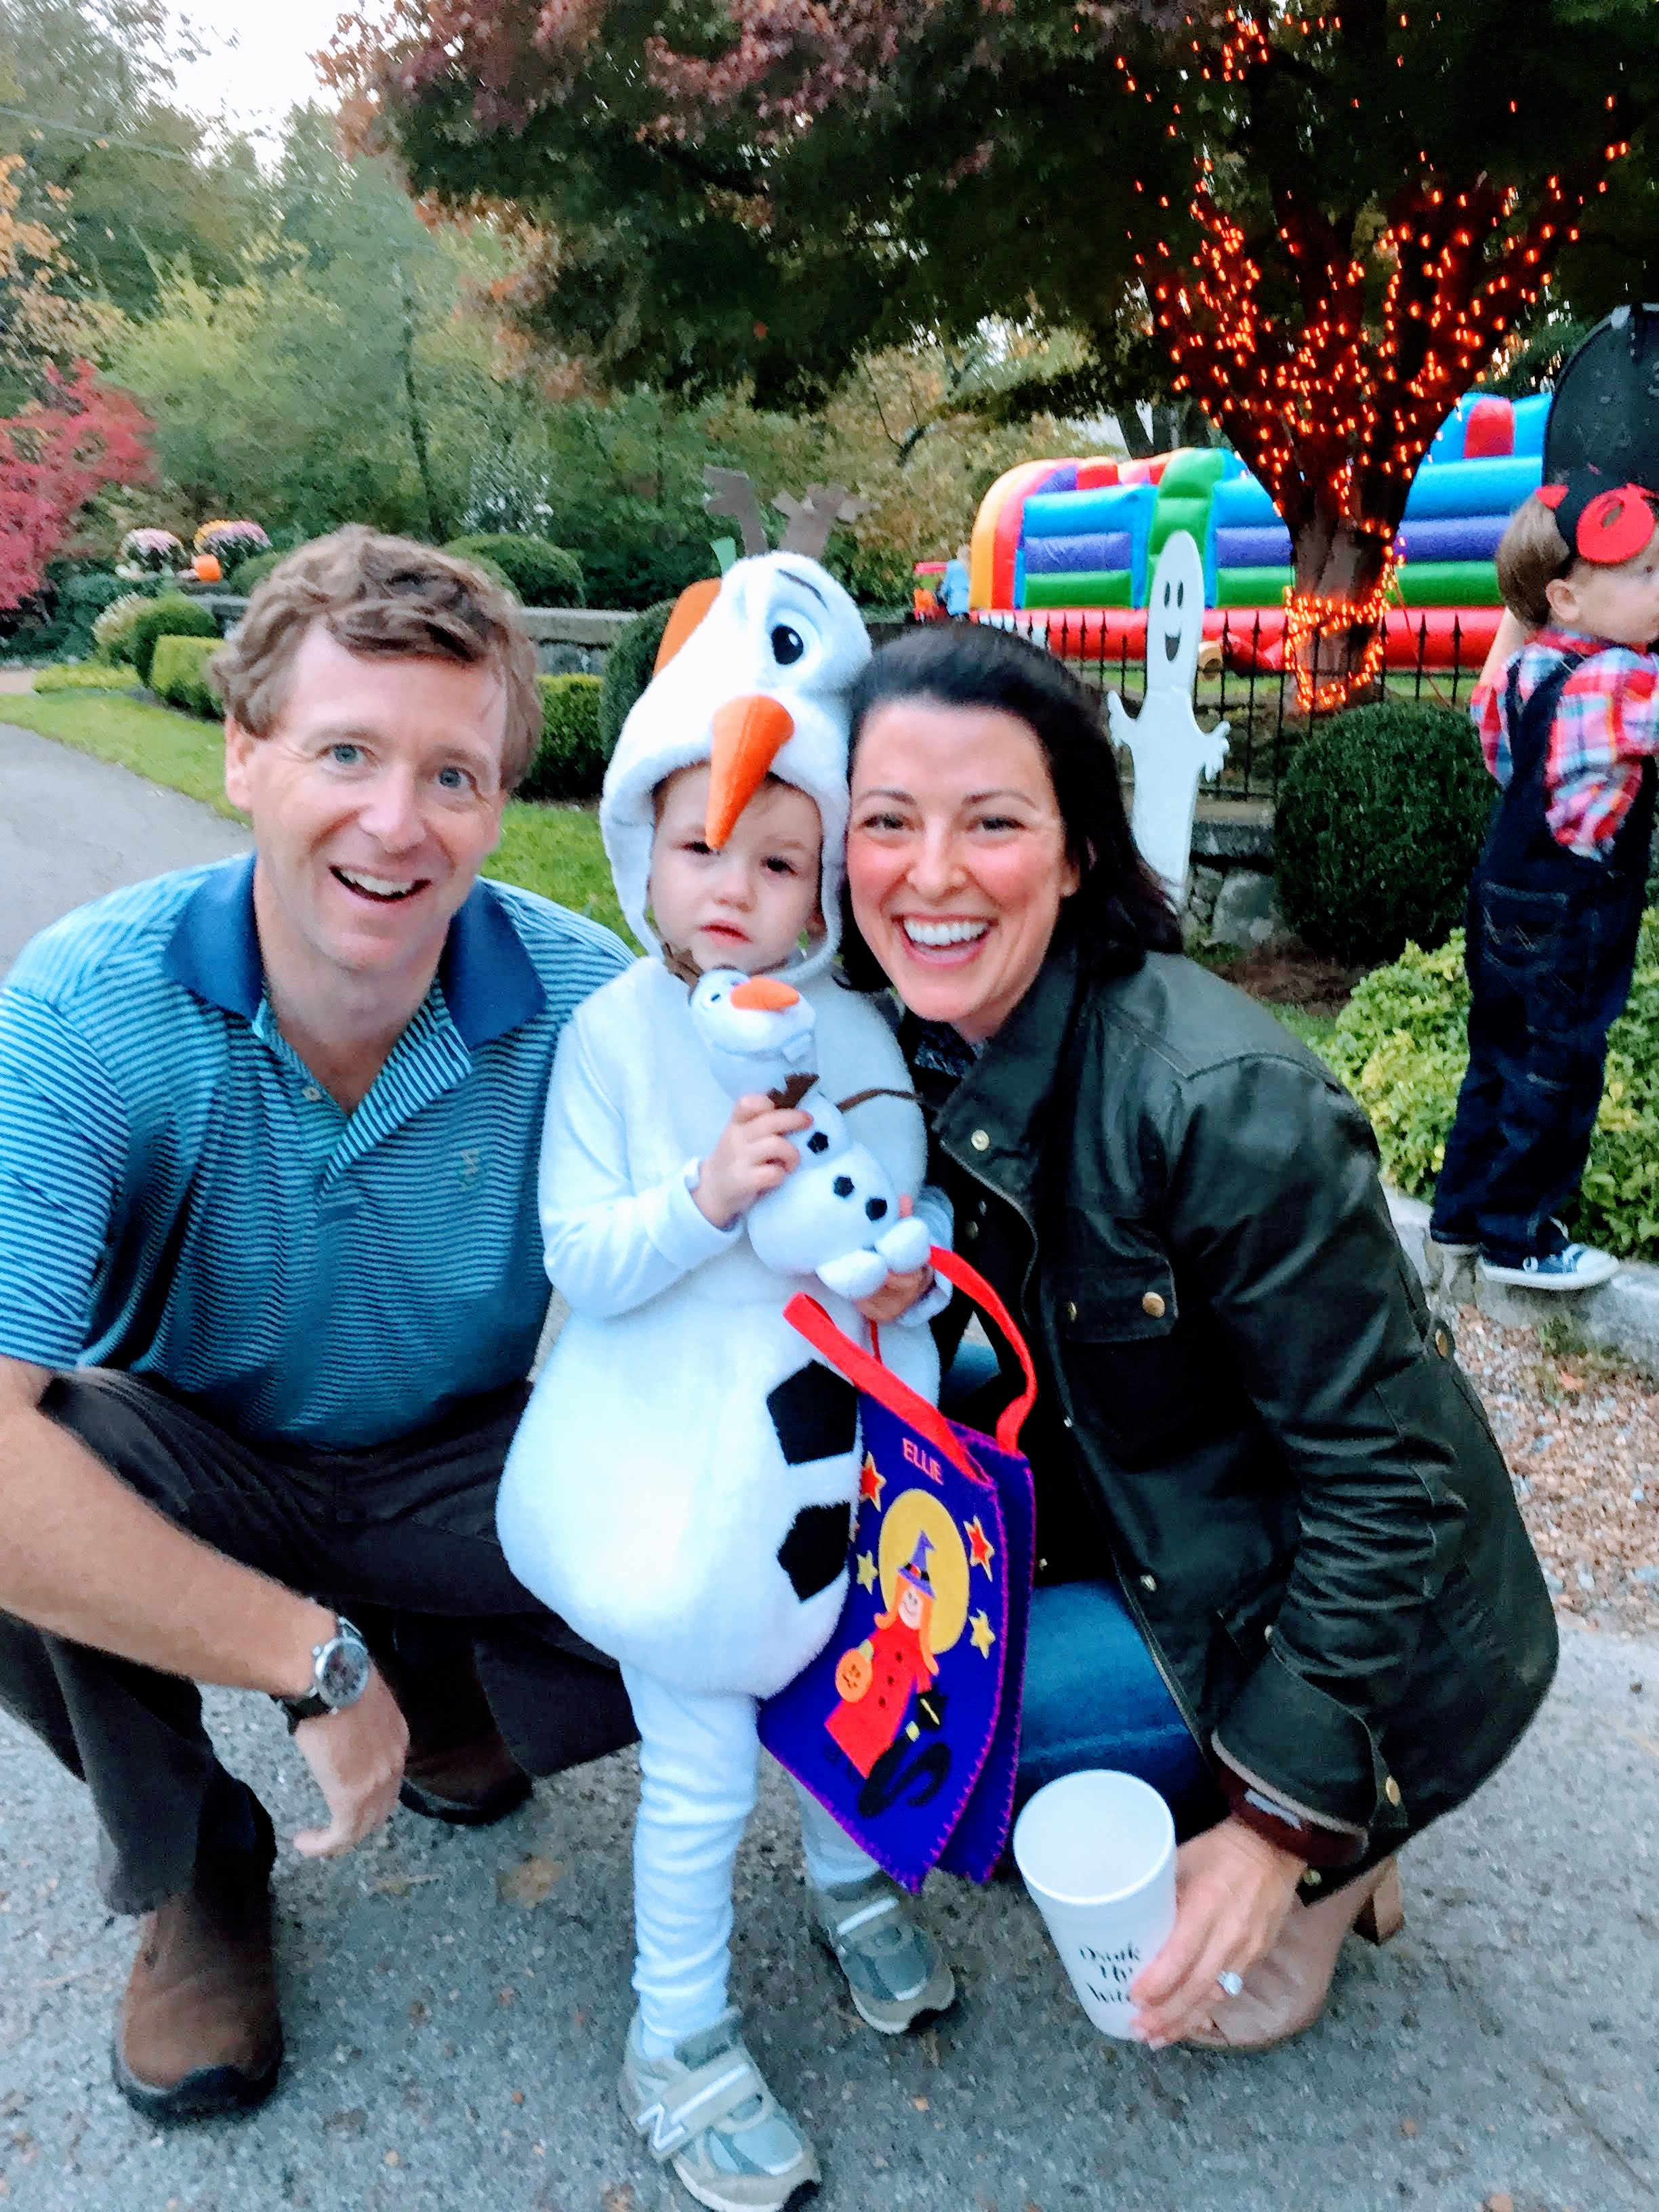 Trick-or-Treating in our precious community